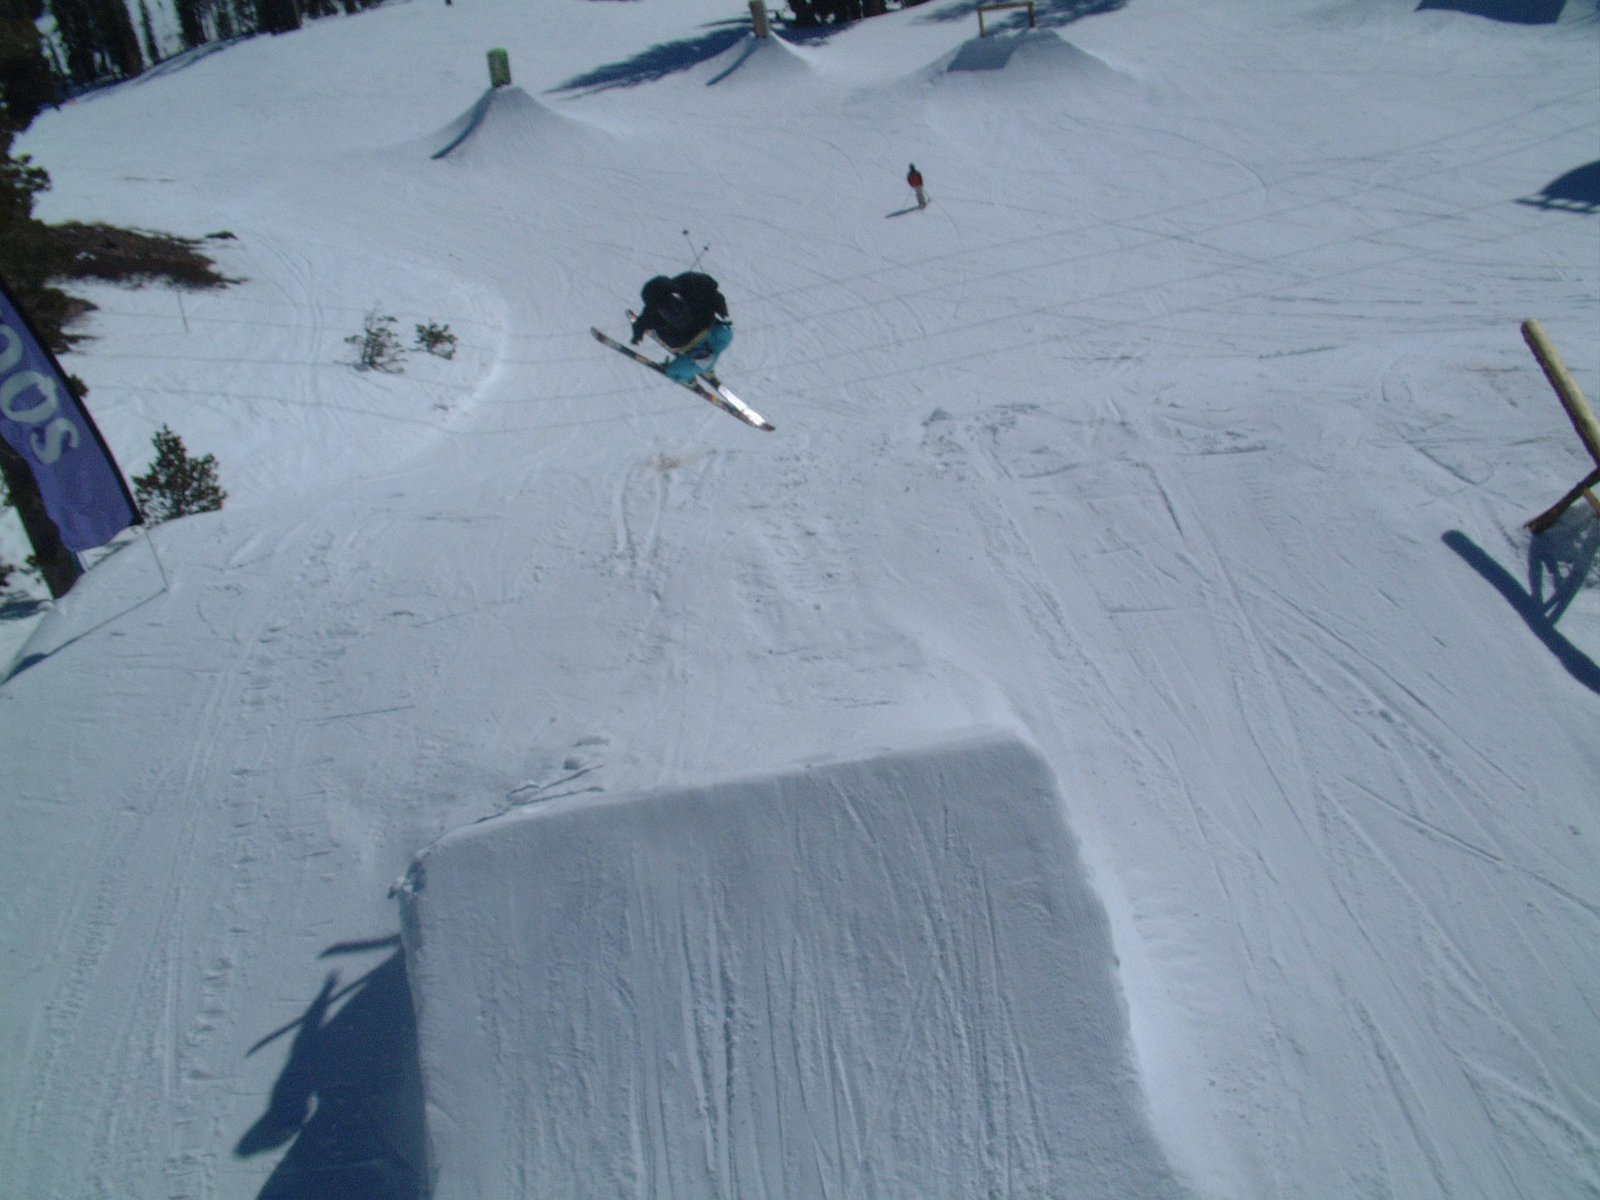 Tail 5 at Squaw